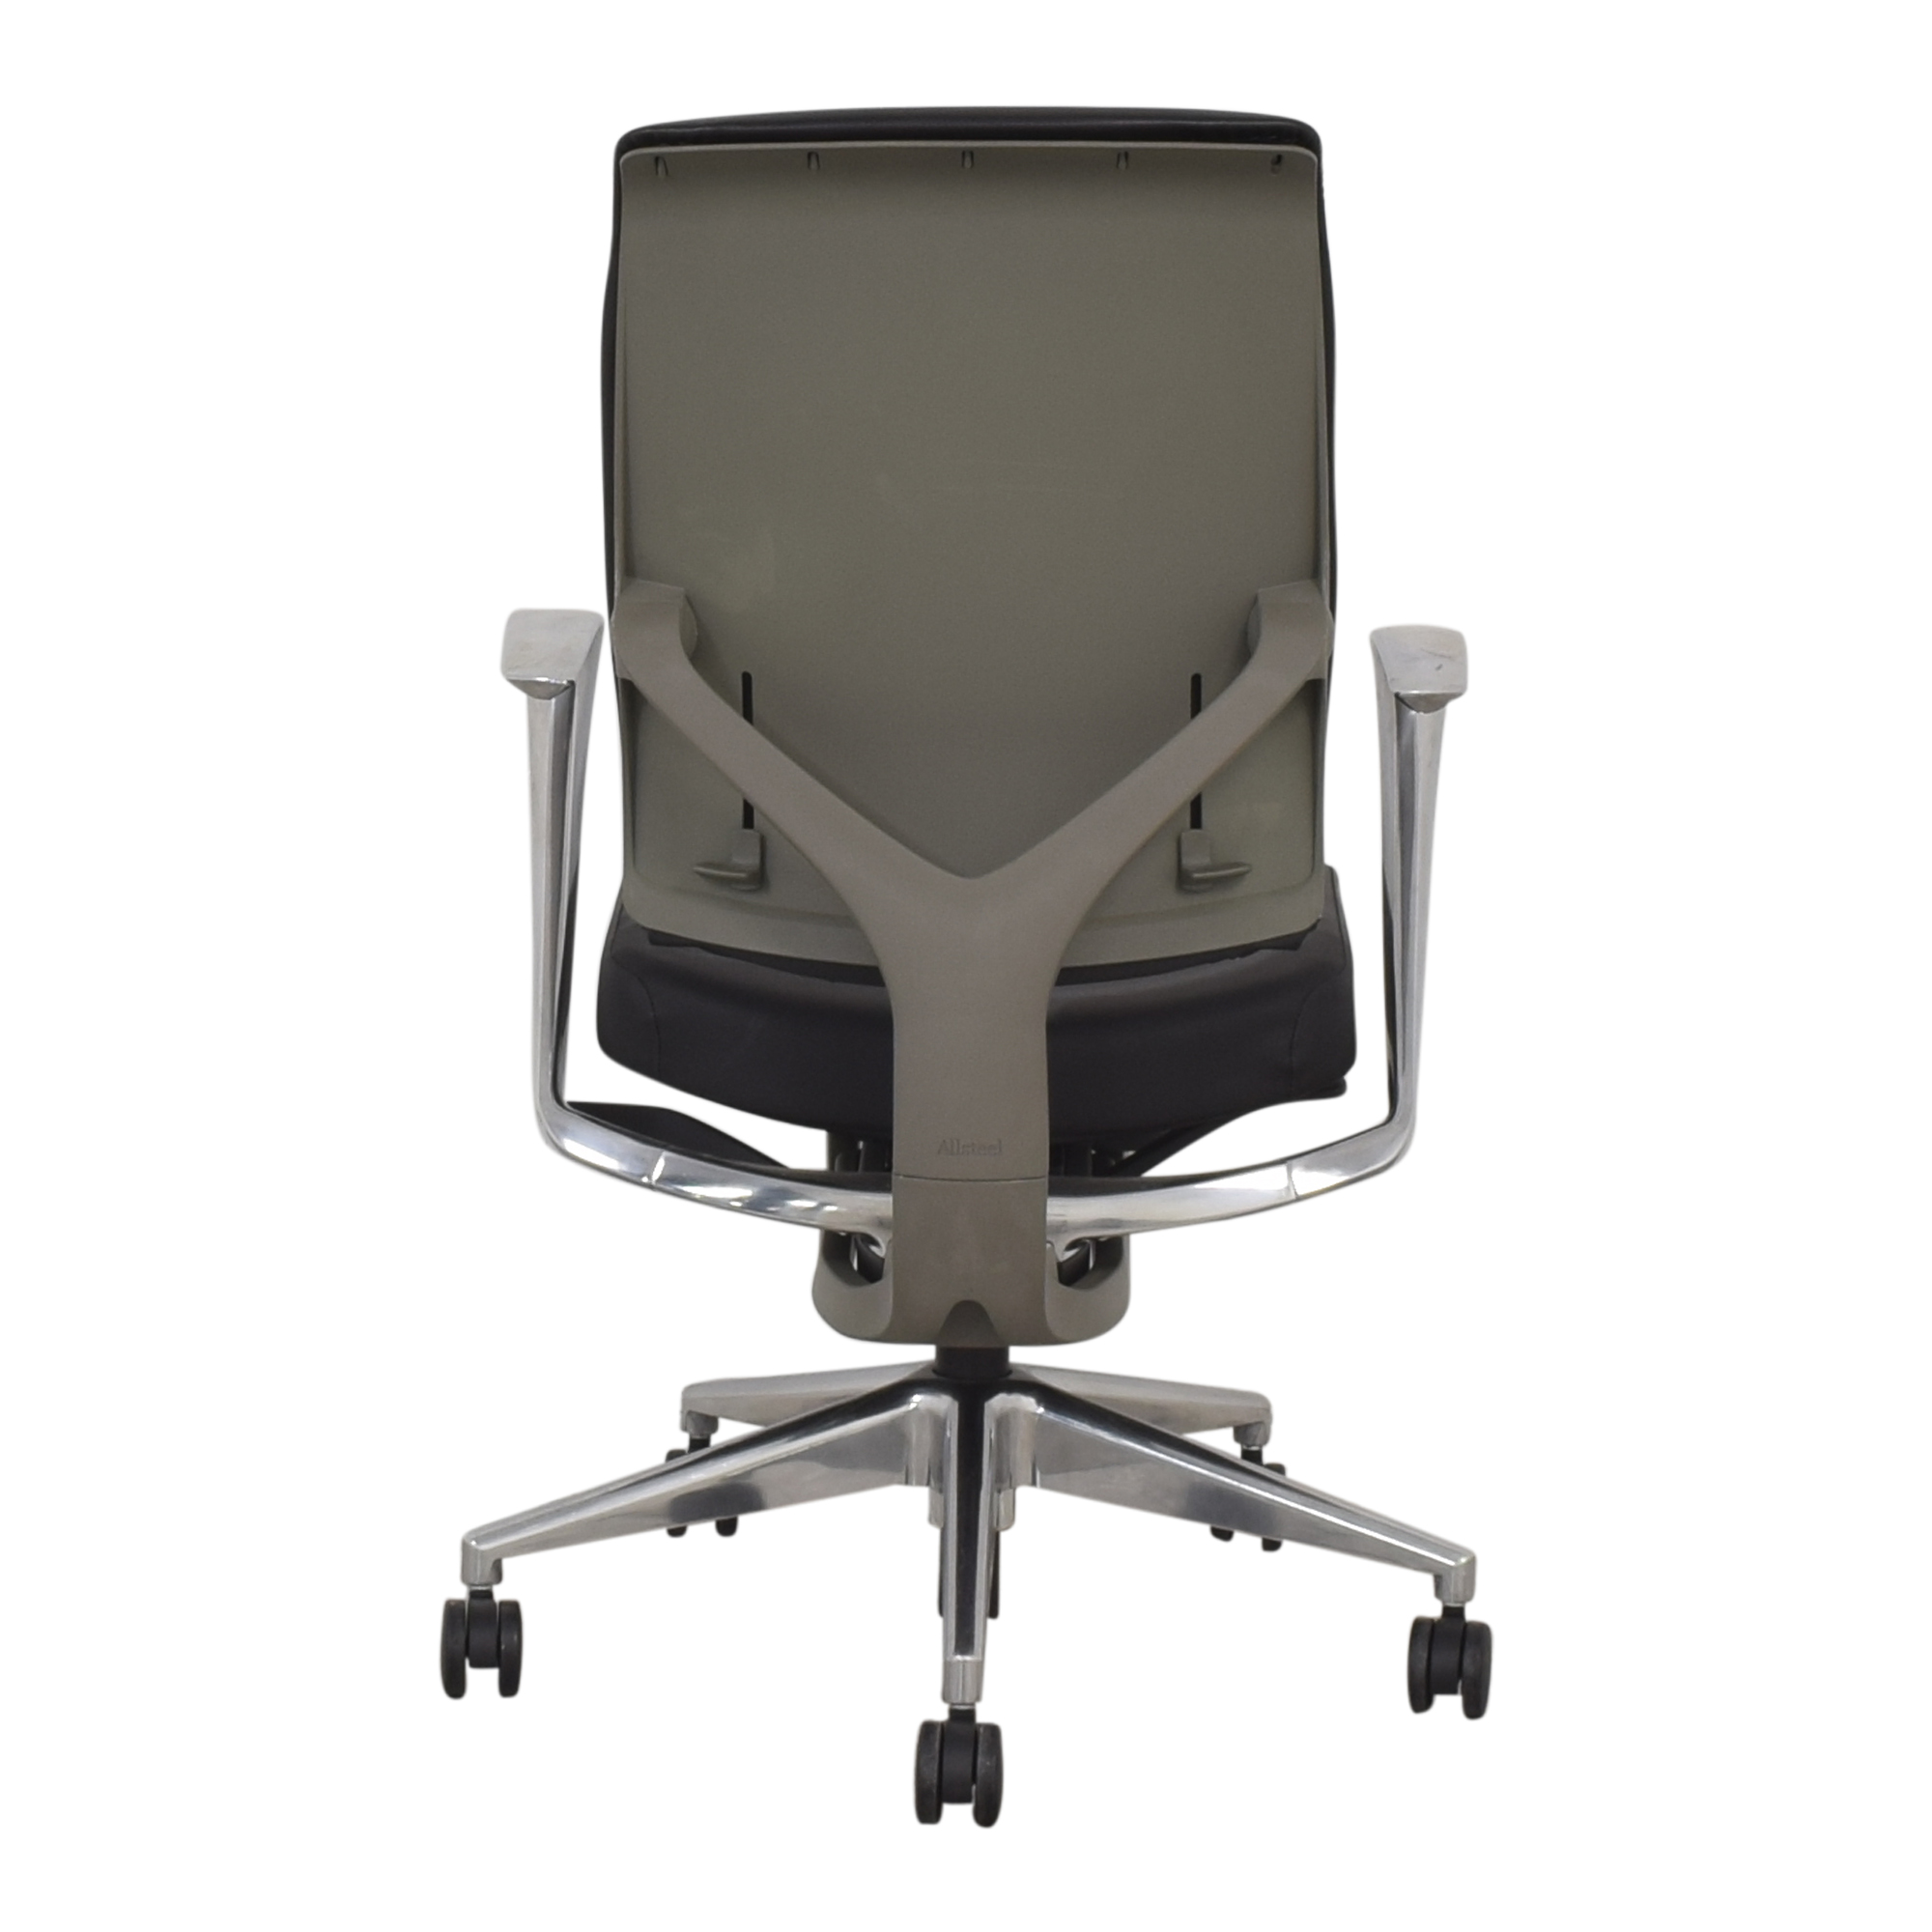 Allsteel Allsteel Task Chair price